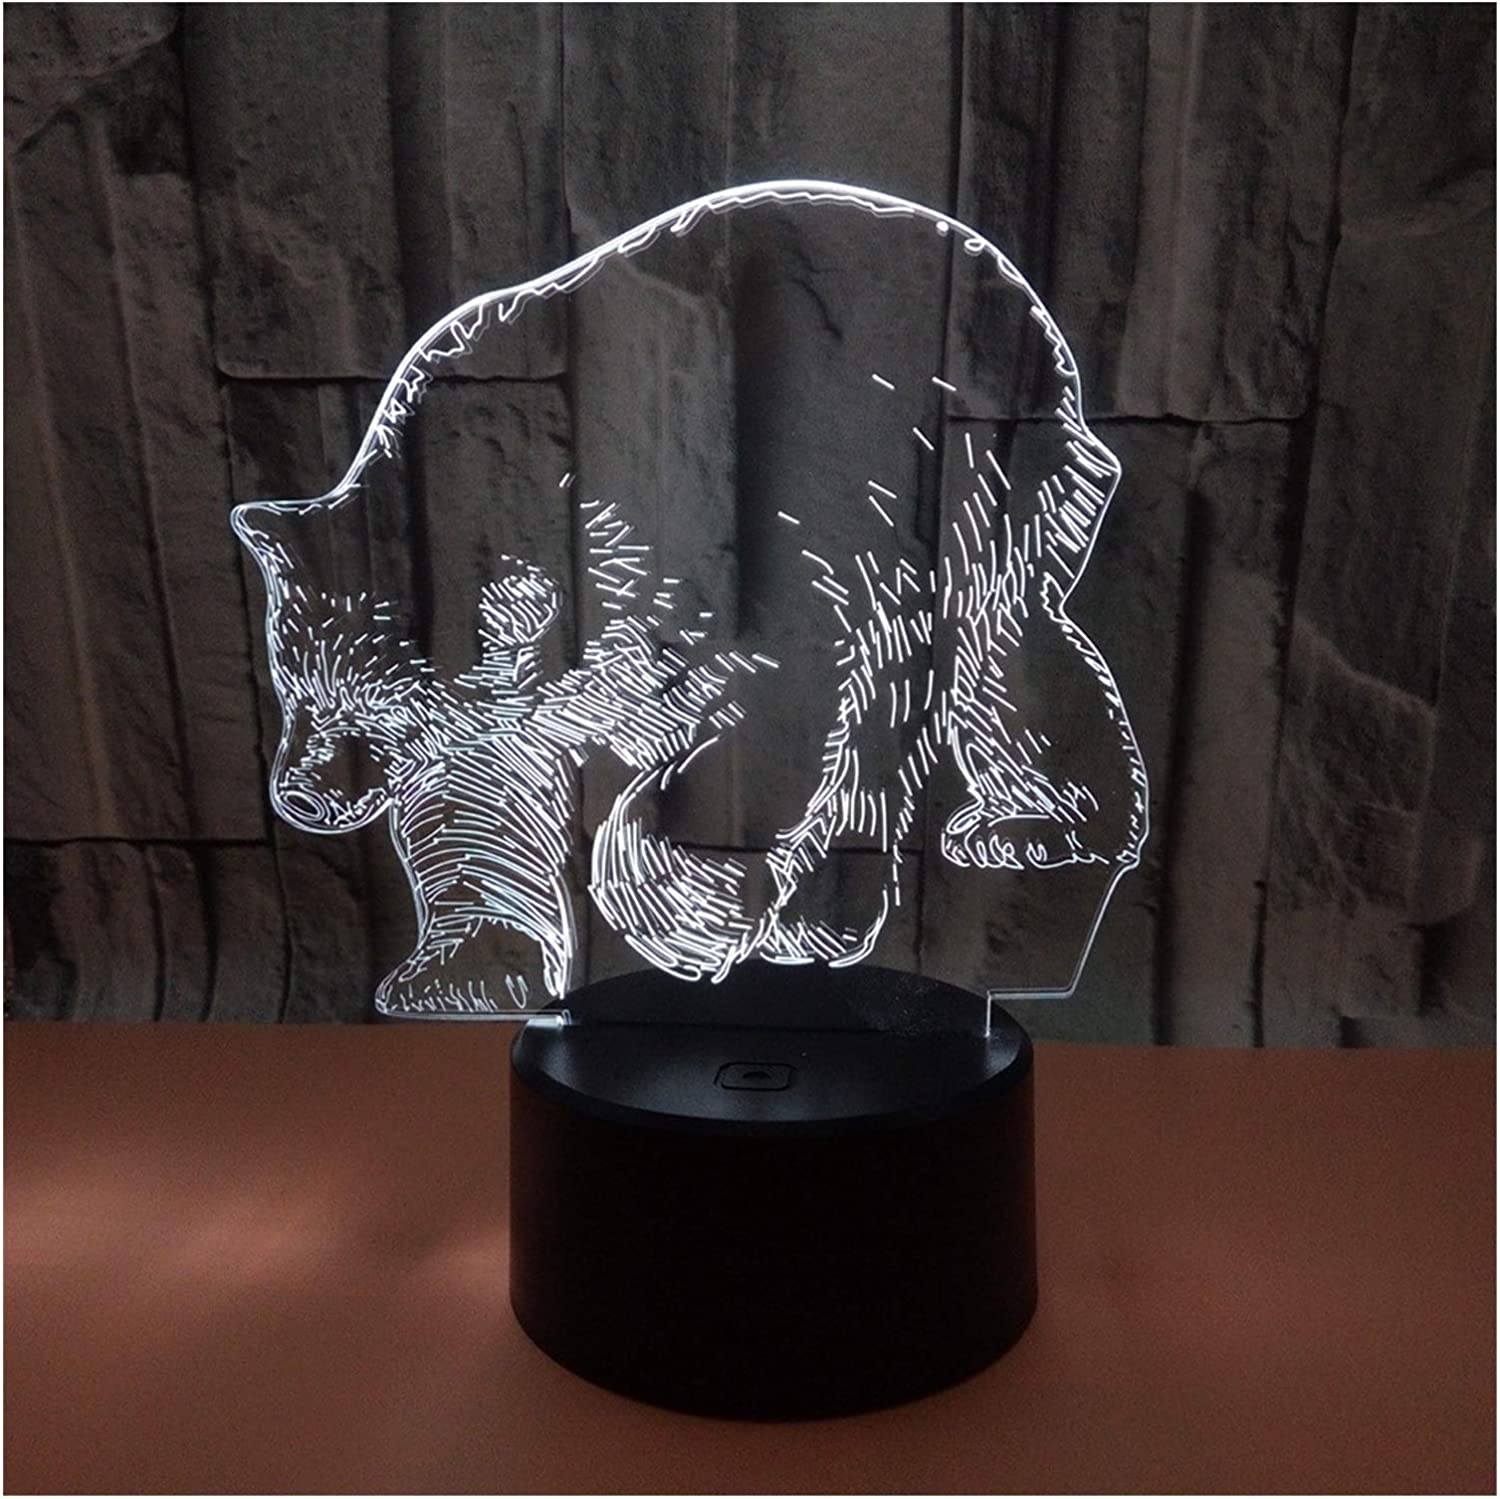 Max 74% OFF Super beauty product restock quality top! LED Night Lamp 3D Illusion Visual Light Led Bear Table Cre Polar